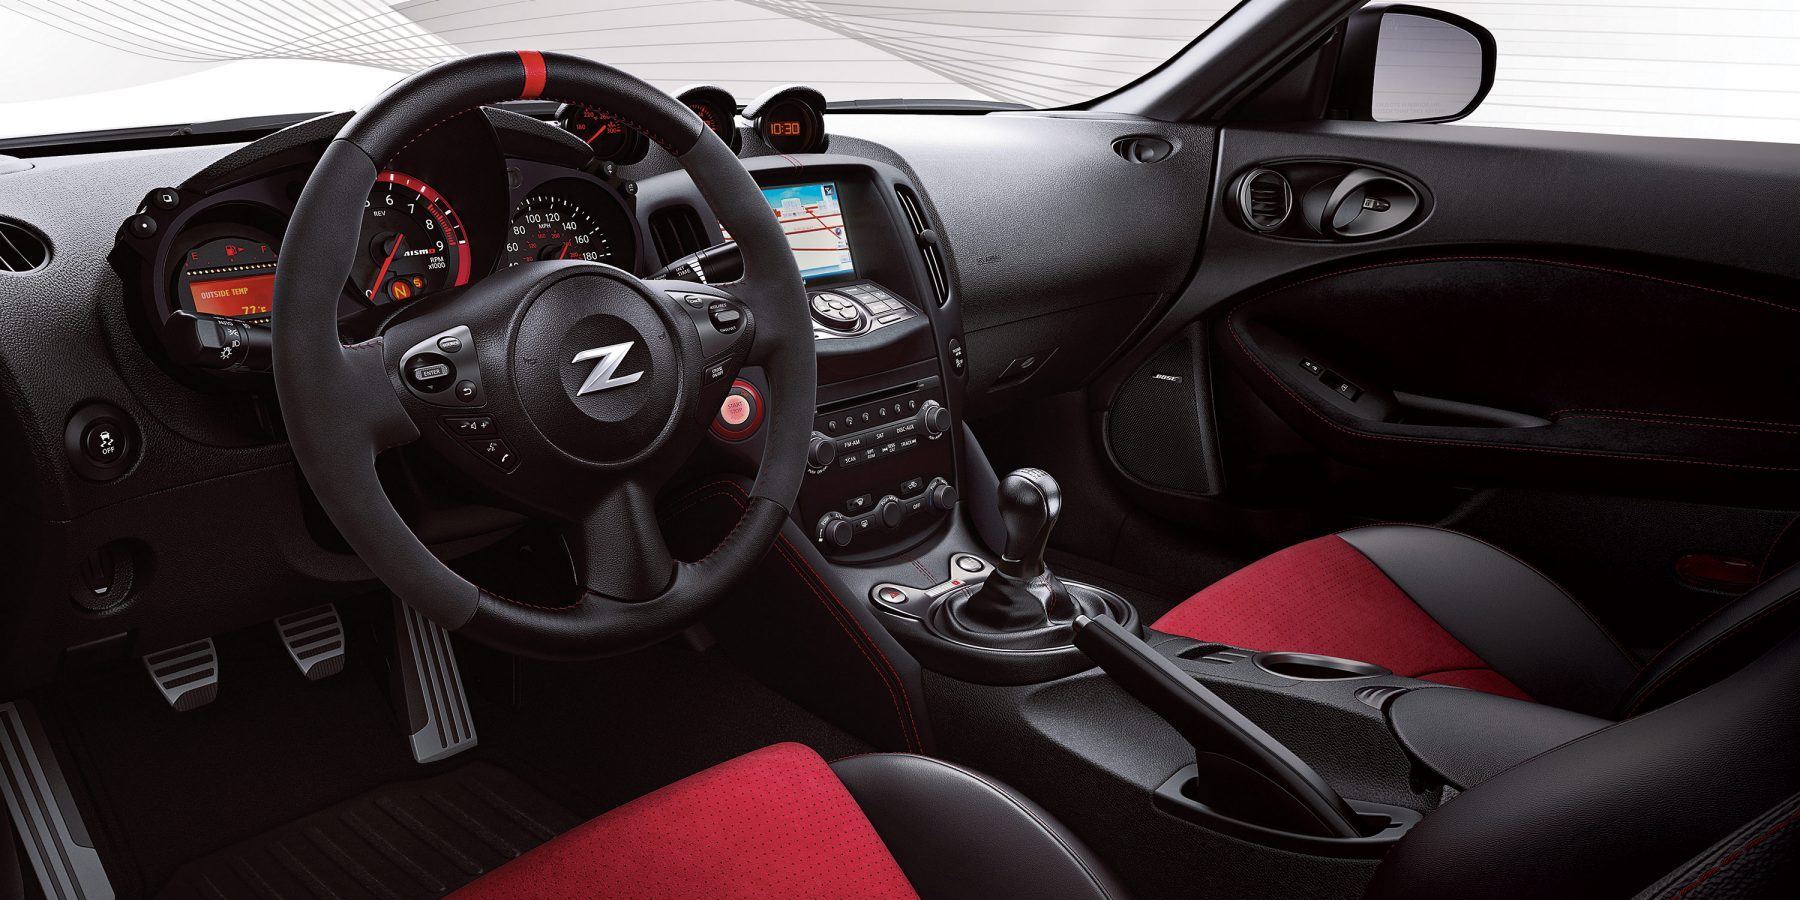 Nissan 370Z Nismo interior with Recaro seats